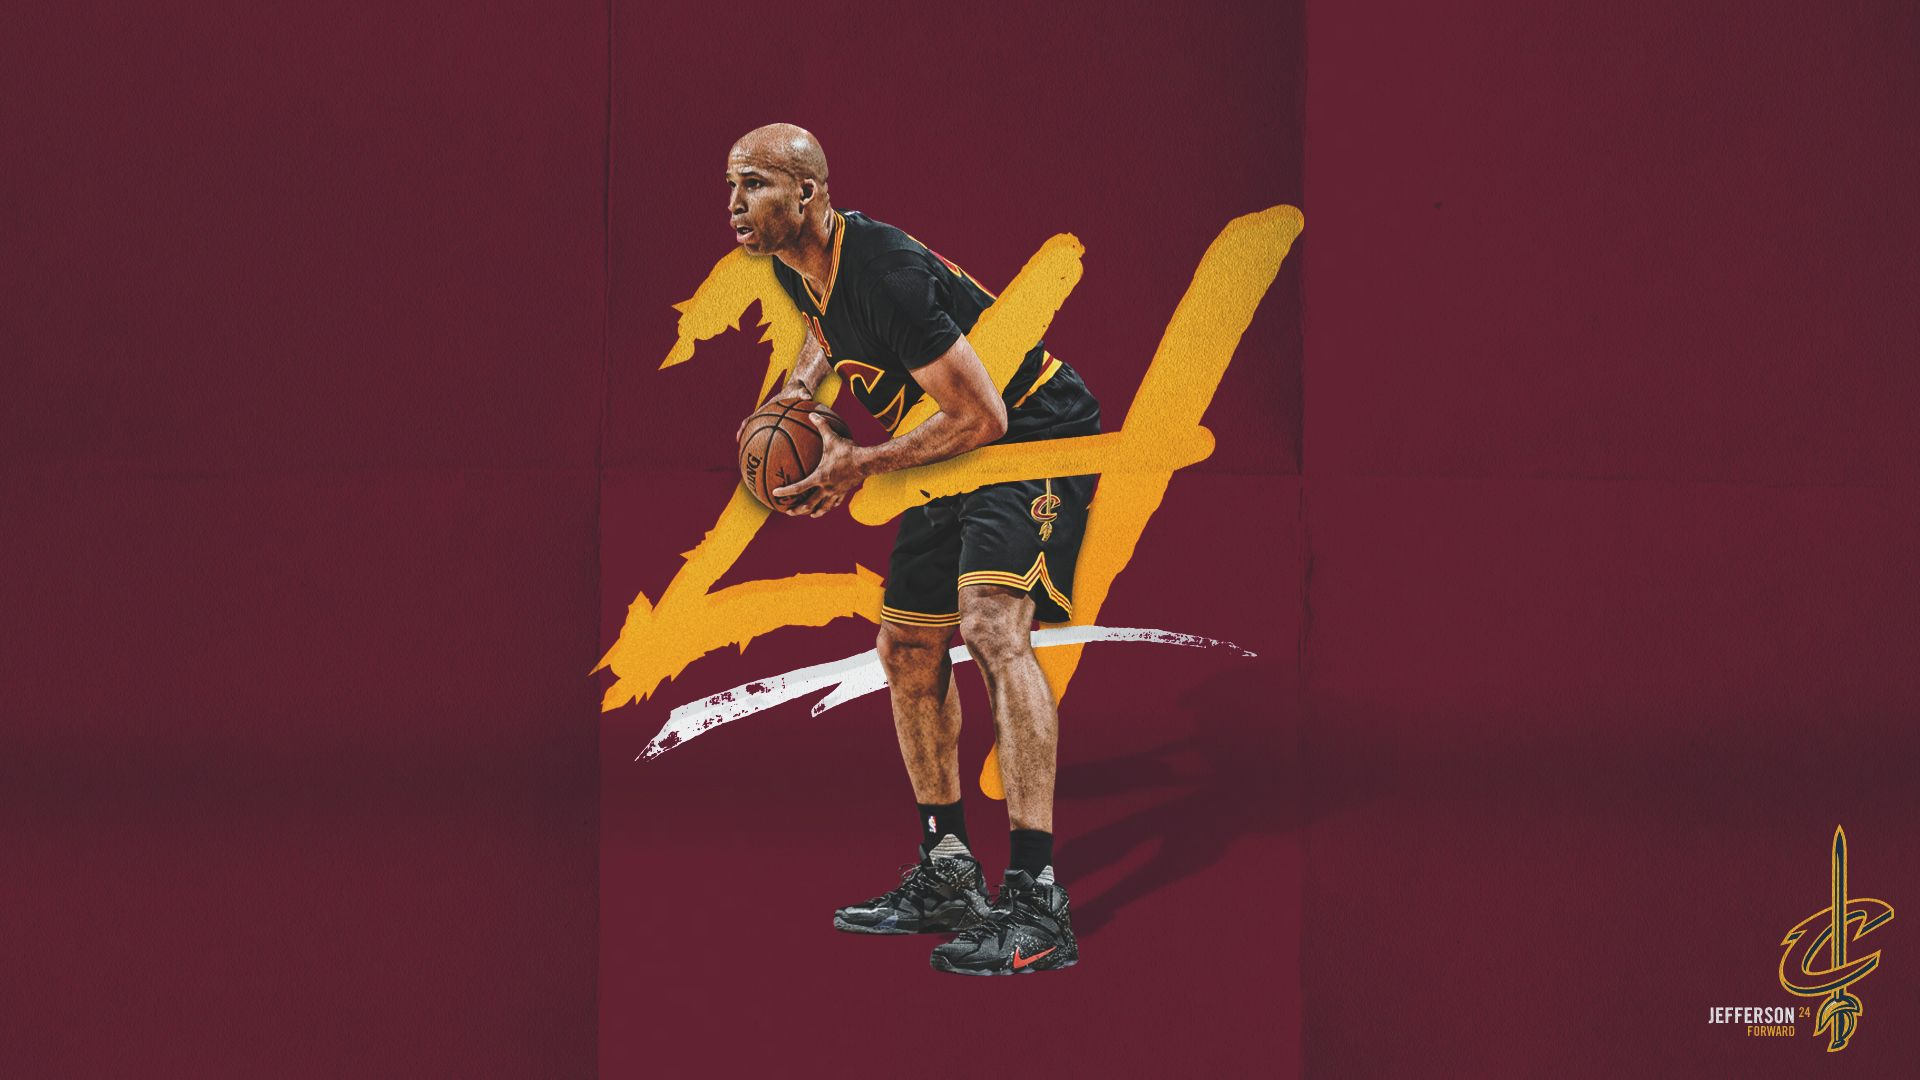 d27af528eed Cleveland Cavaliers-defending champion | Cleveland Cavaliers | Nba ...